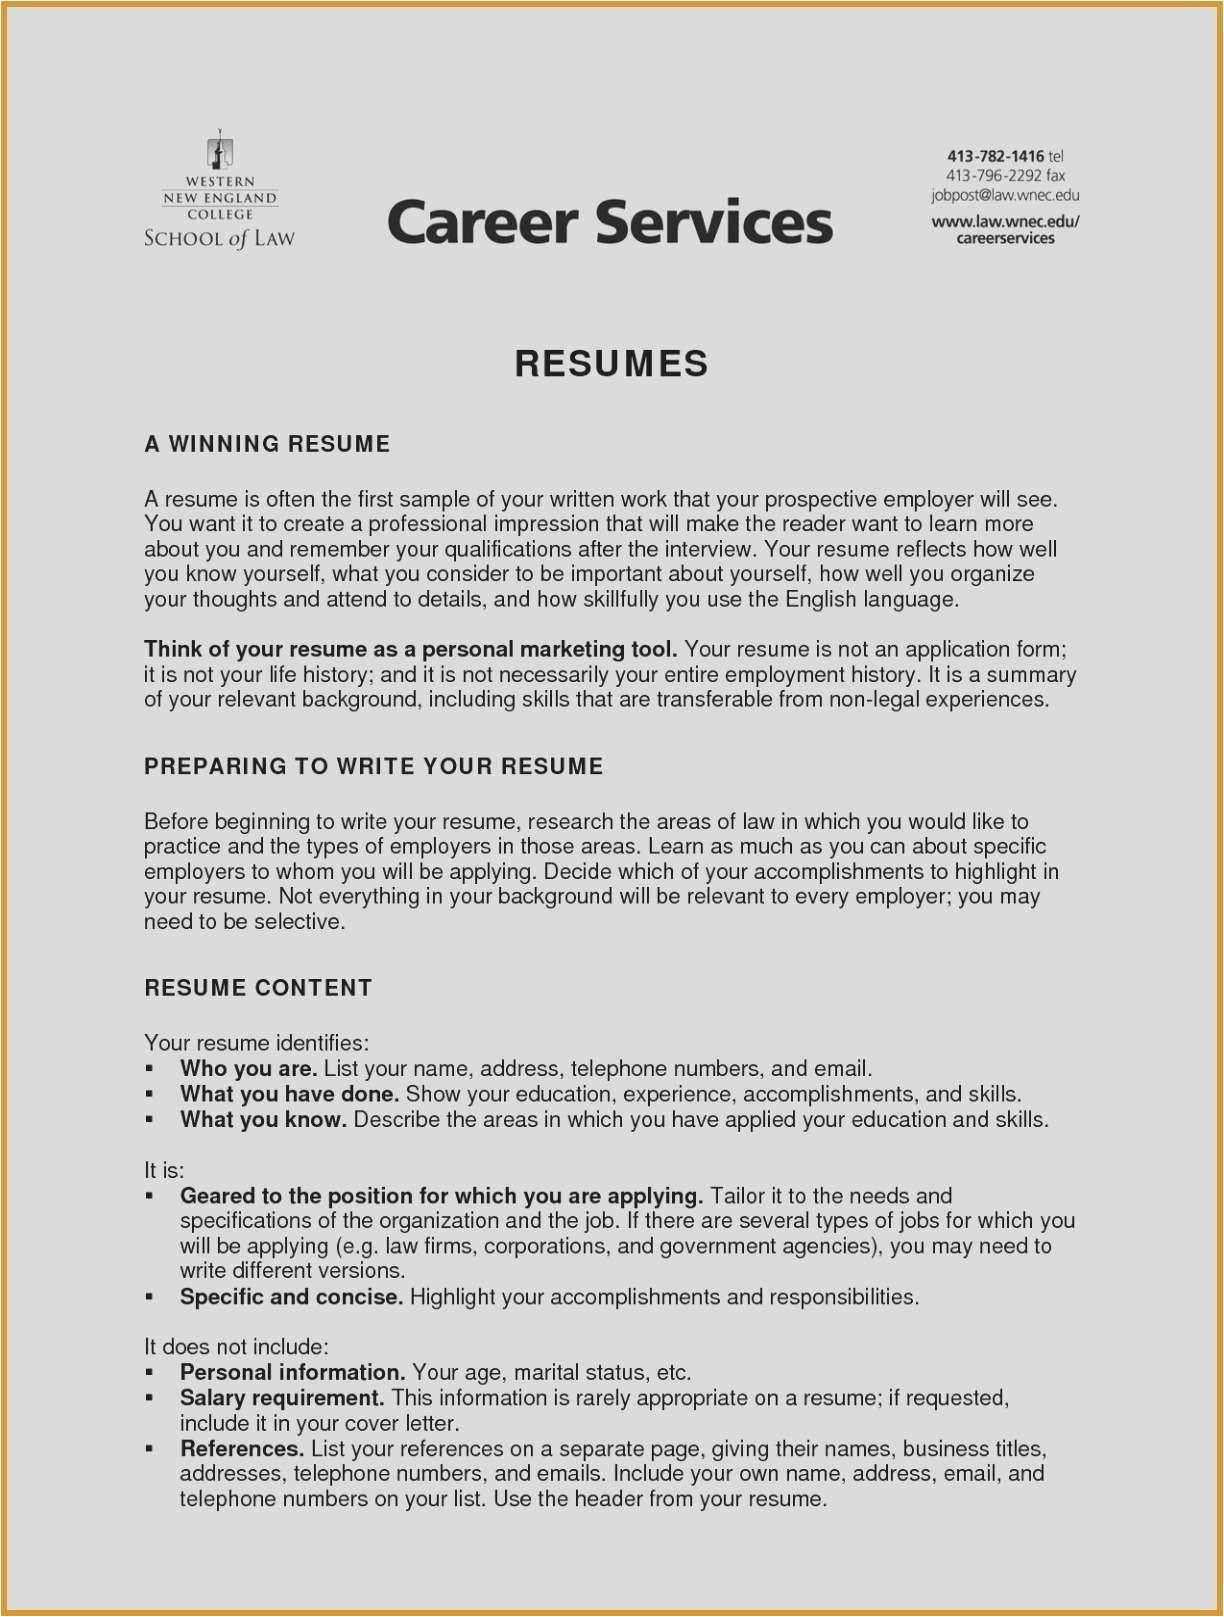 A Professional Resume - Types Business Picture Type A Resume Beautiful New Entry Level